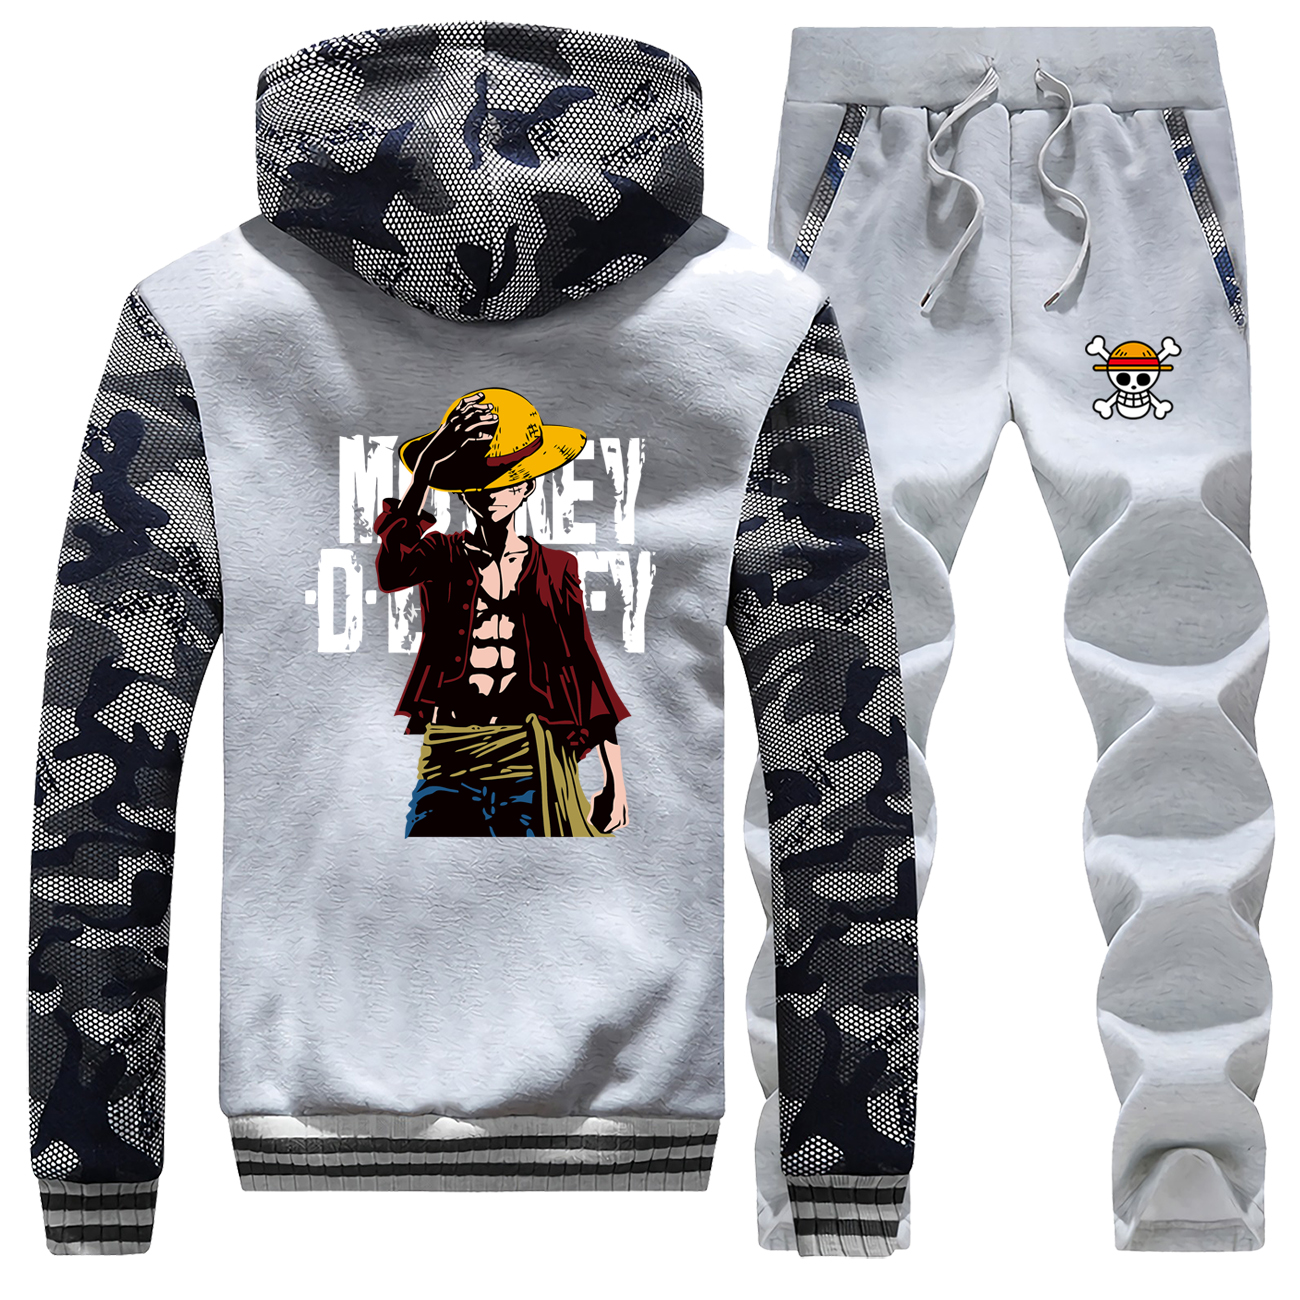 One Piece Japan Men's Sets Monkey D Luffy Camo Mens Japan Anime Sweatsuit Casual Winter Warm Jacket Fleece Bodywarmer Sweatshirt